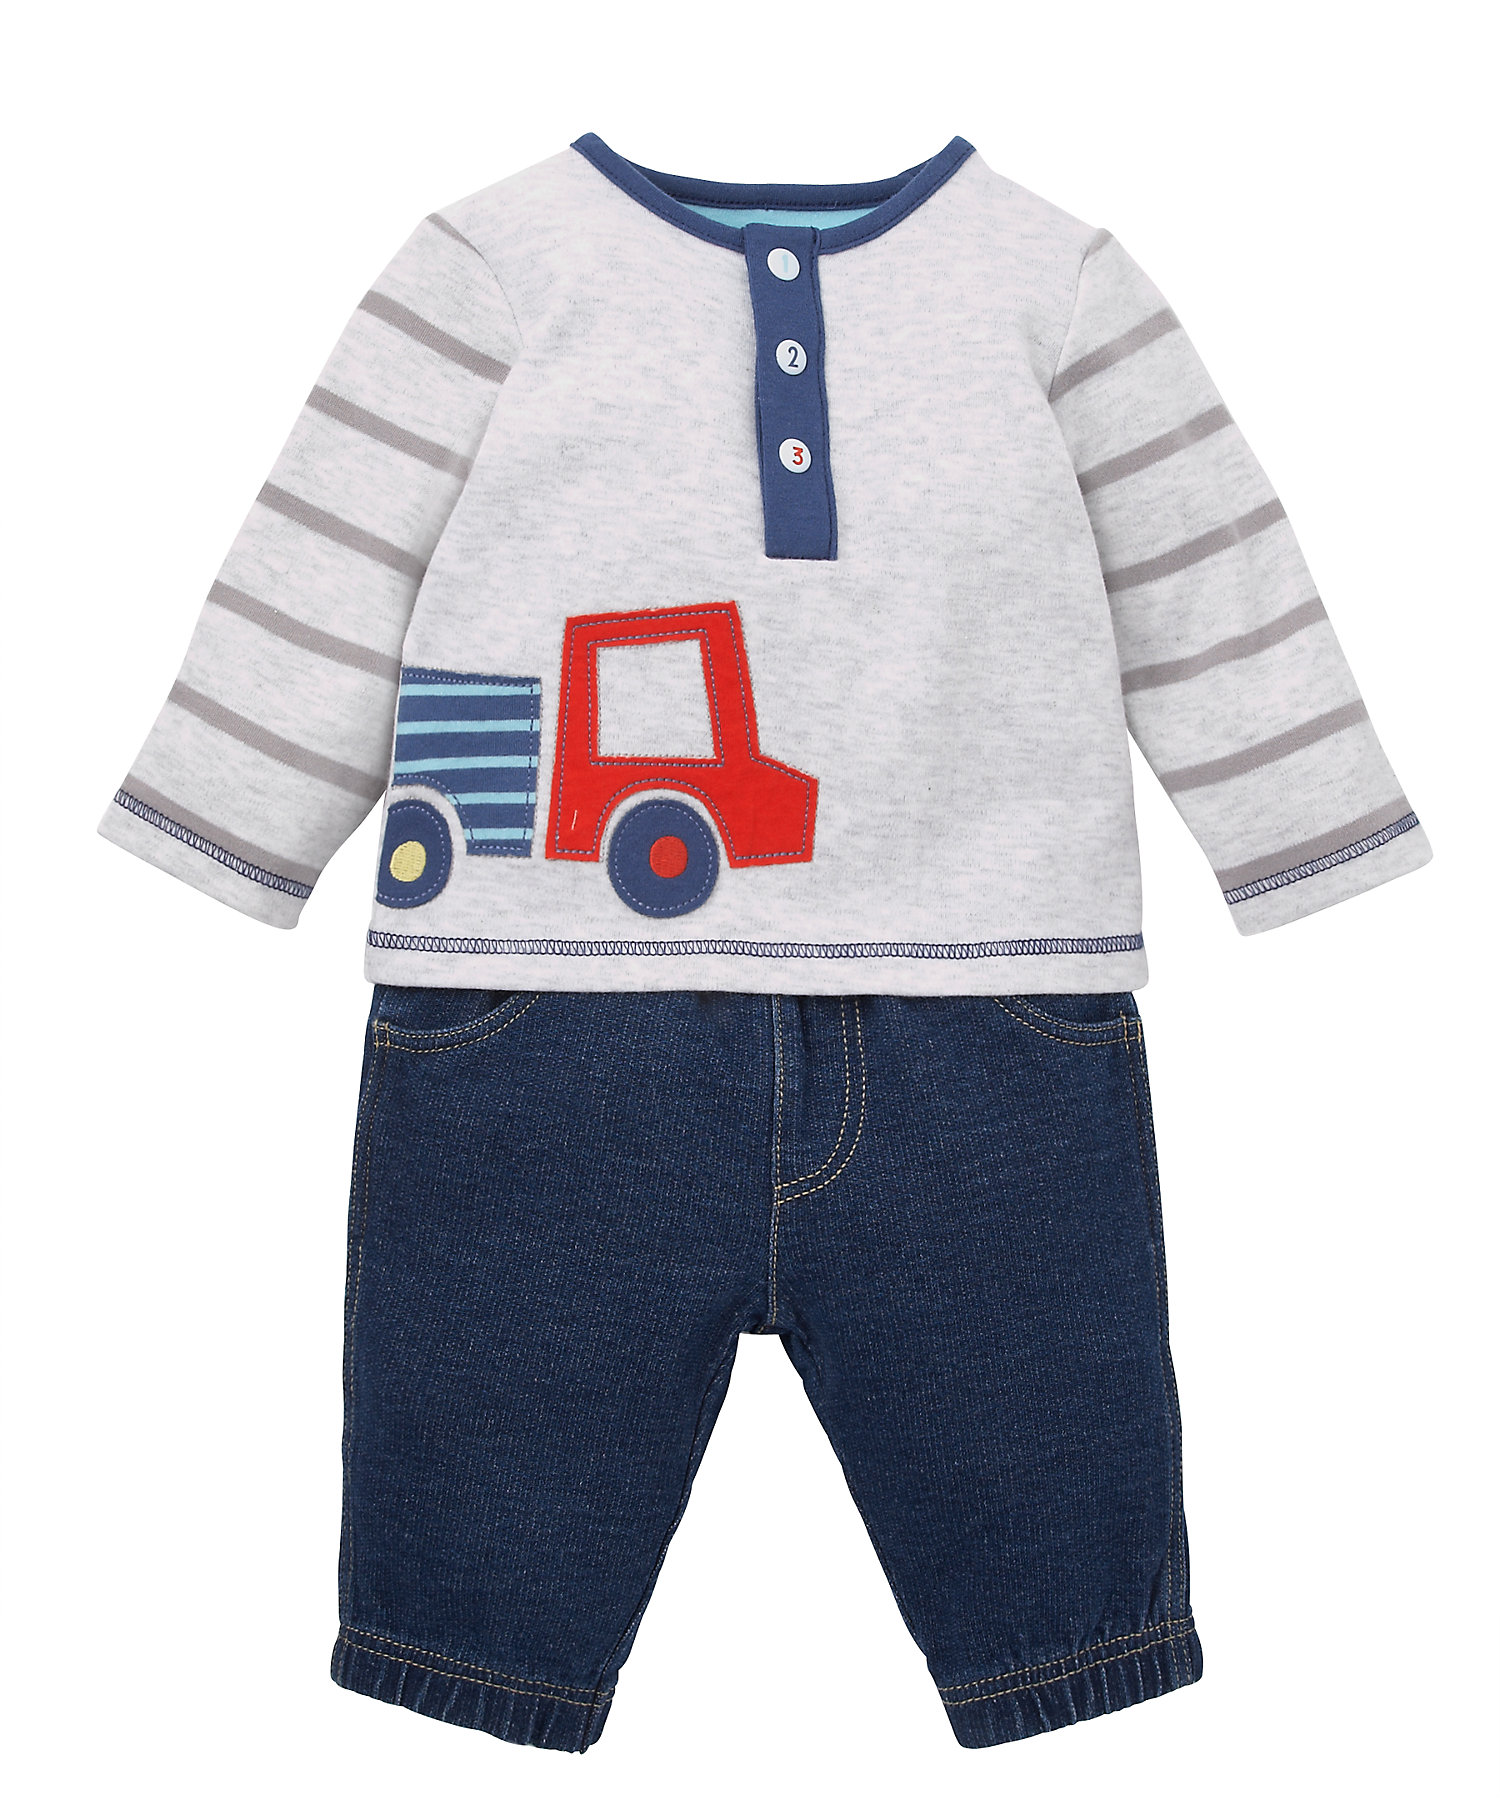 Mothercare | Boys Full Sleeves T-Shirt And Jeans Set Truck Patchwork - Grey